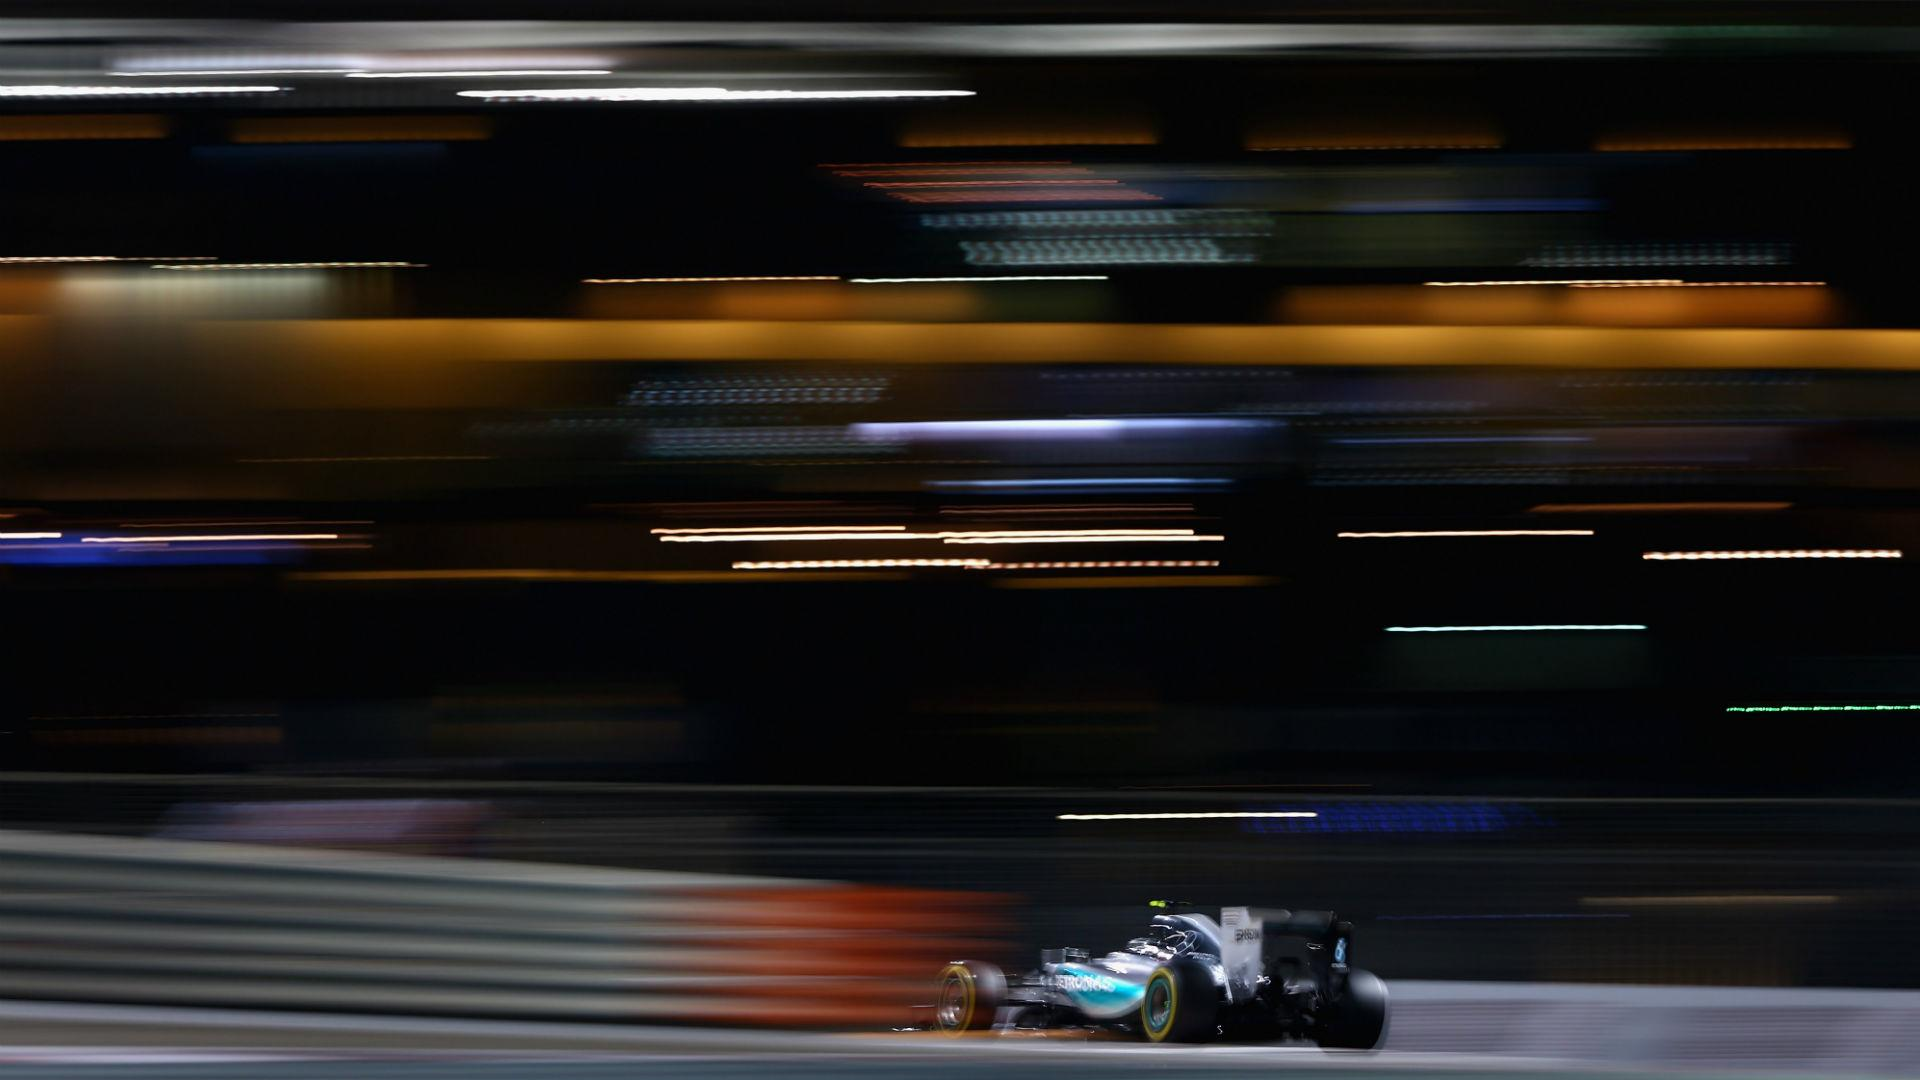 Sixth pole in a row for Rosberg